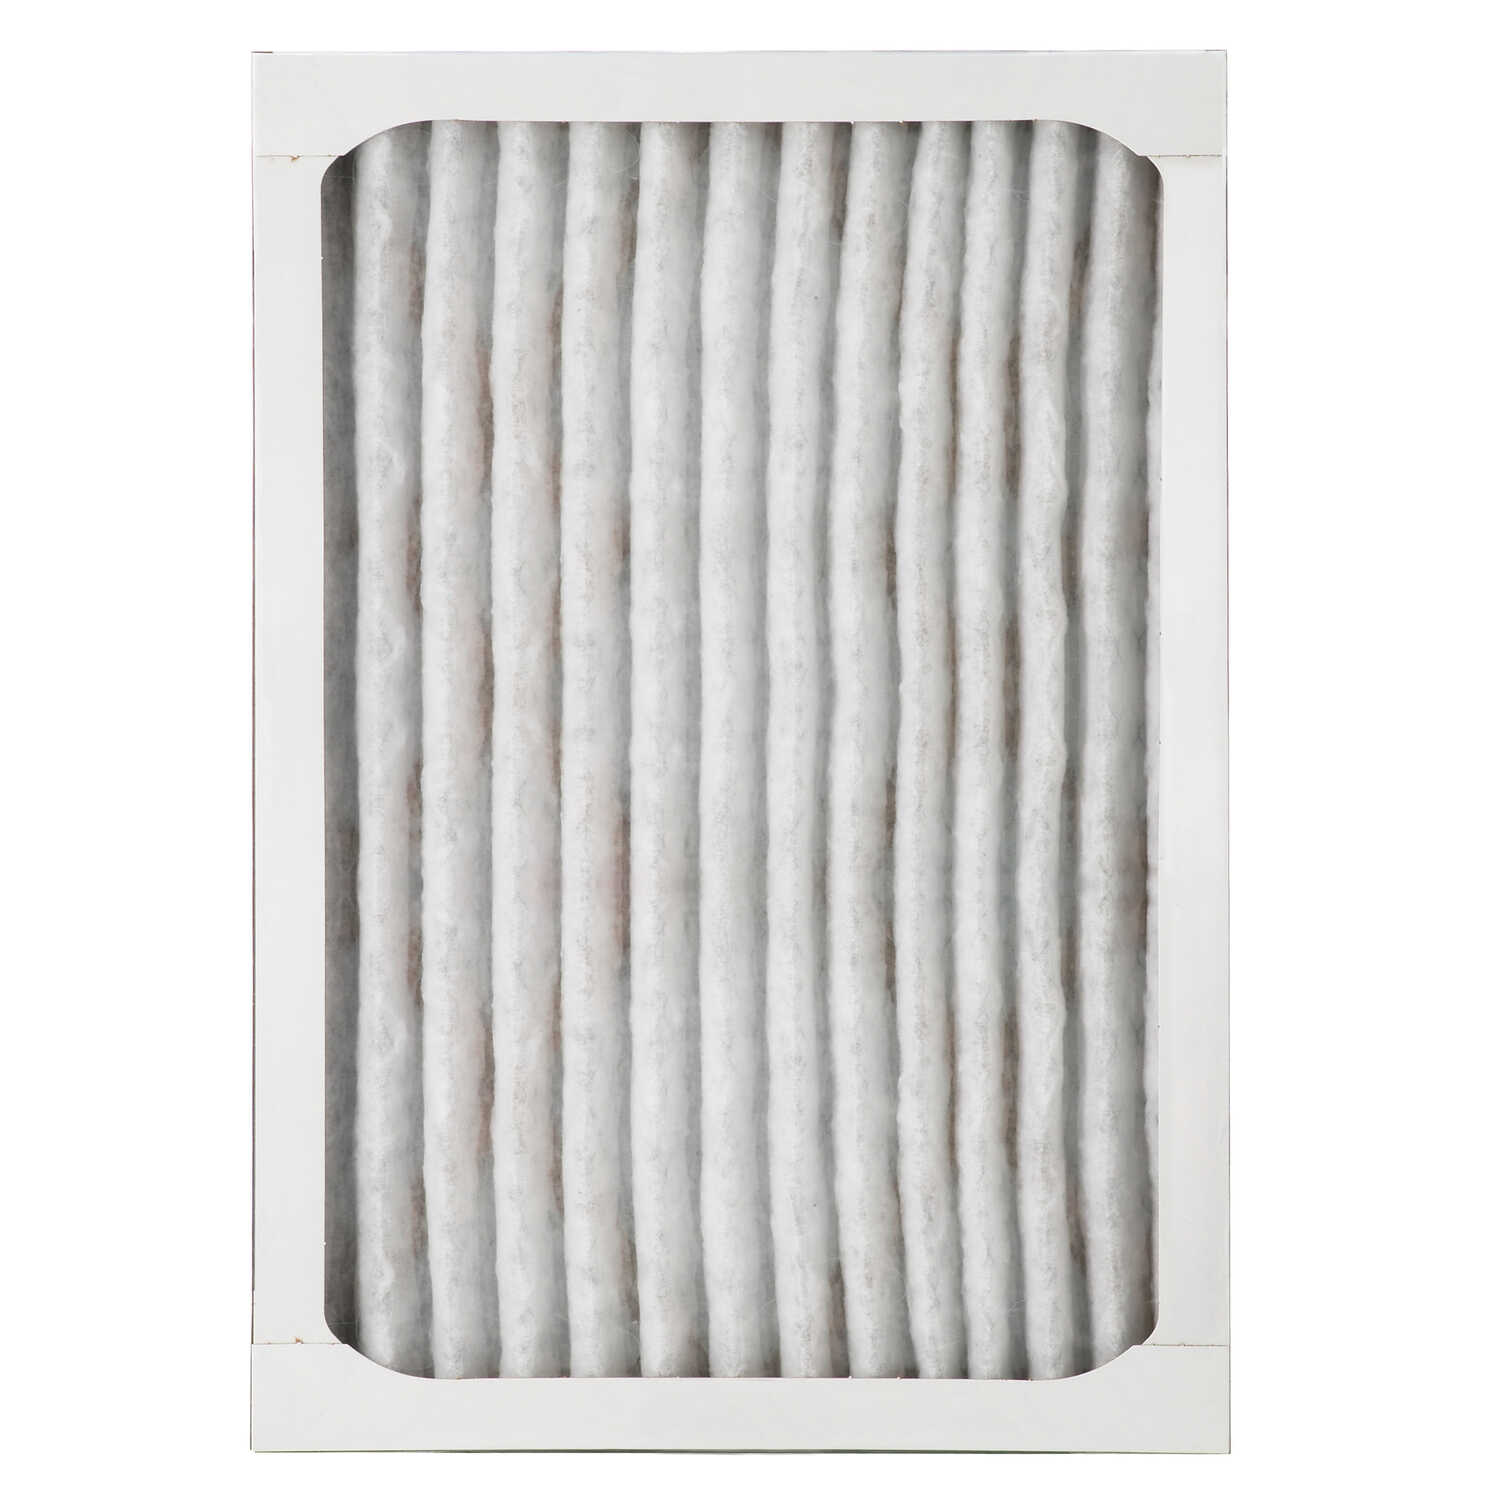 3M  Filtrete  25 in. H x 16 in. W x 1 in. D 7 MERV Air Filter